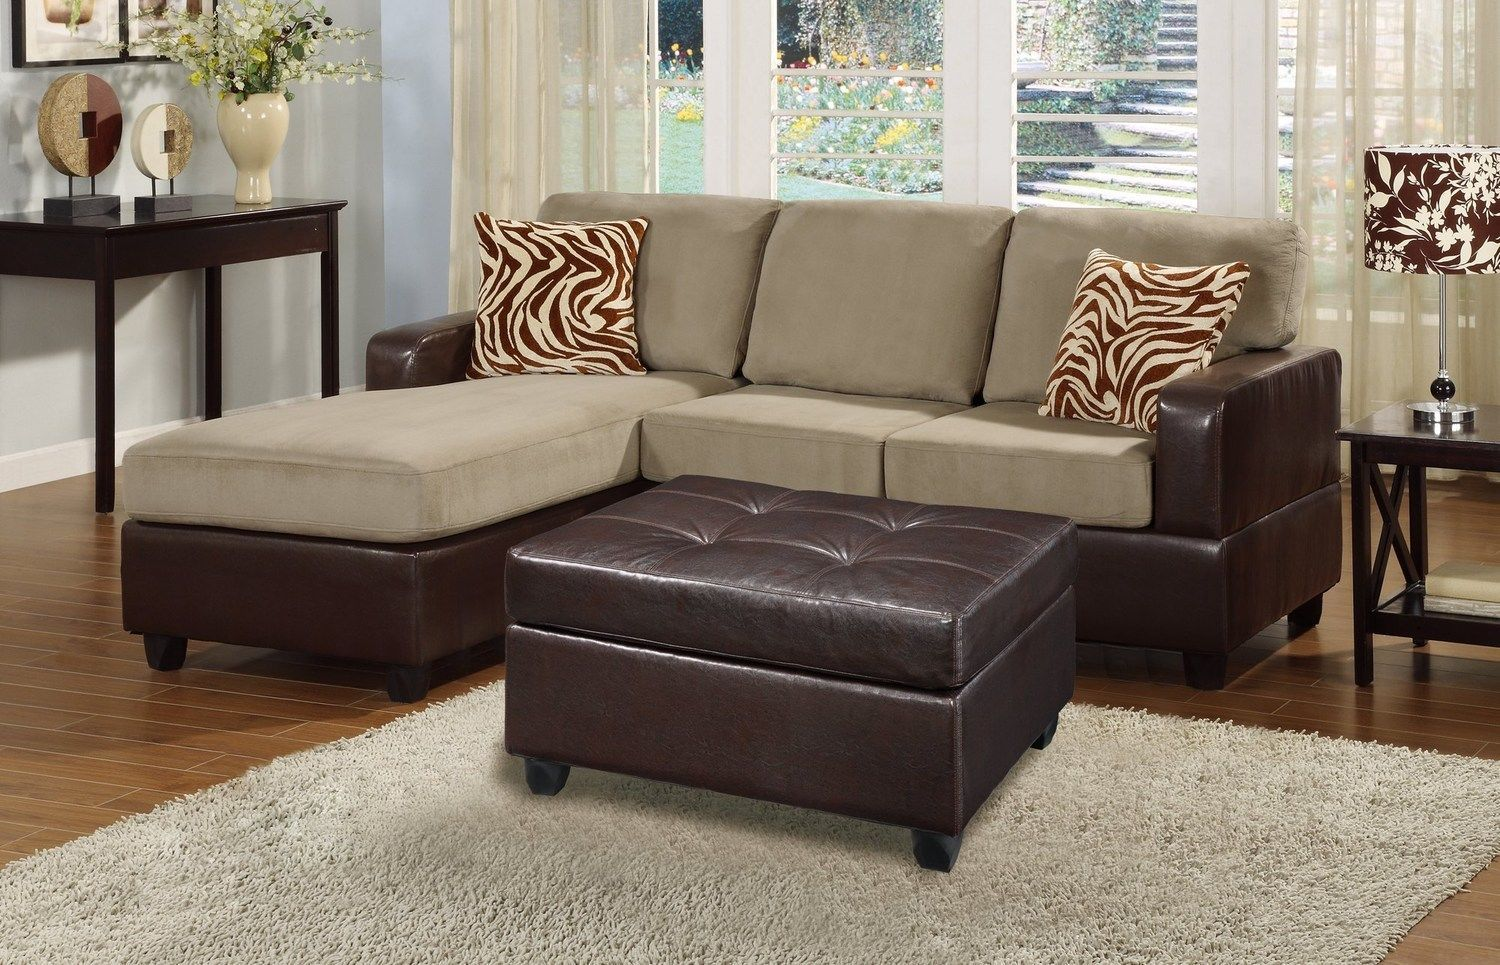 Bobkona Manhanttan Reversible Microfiber 3-Piece Sectional Sofa with Faux  Lea...